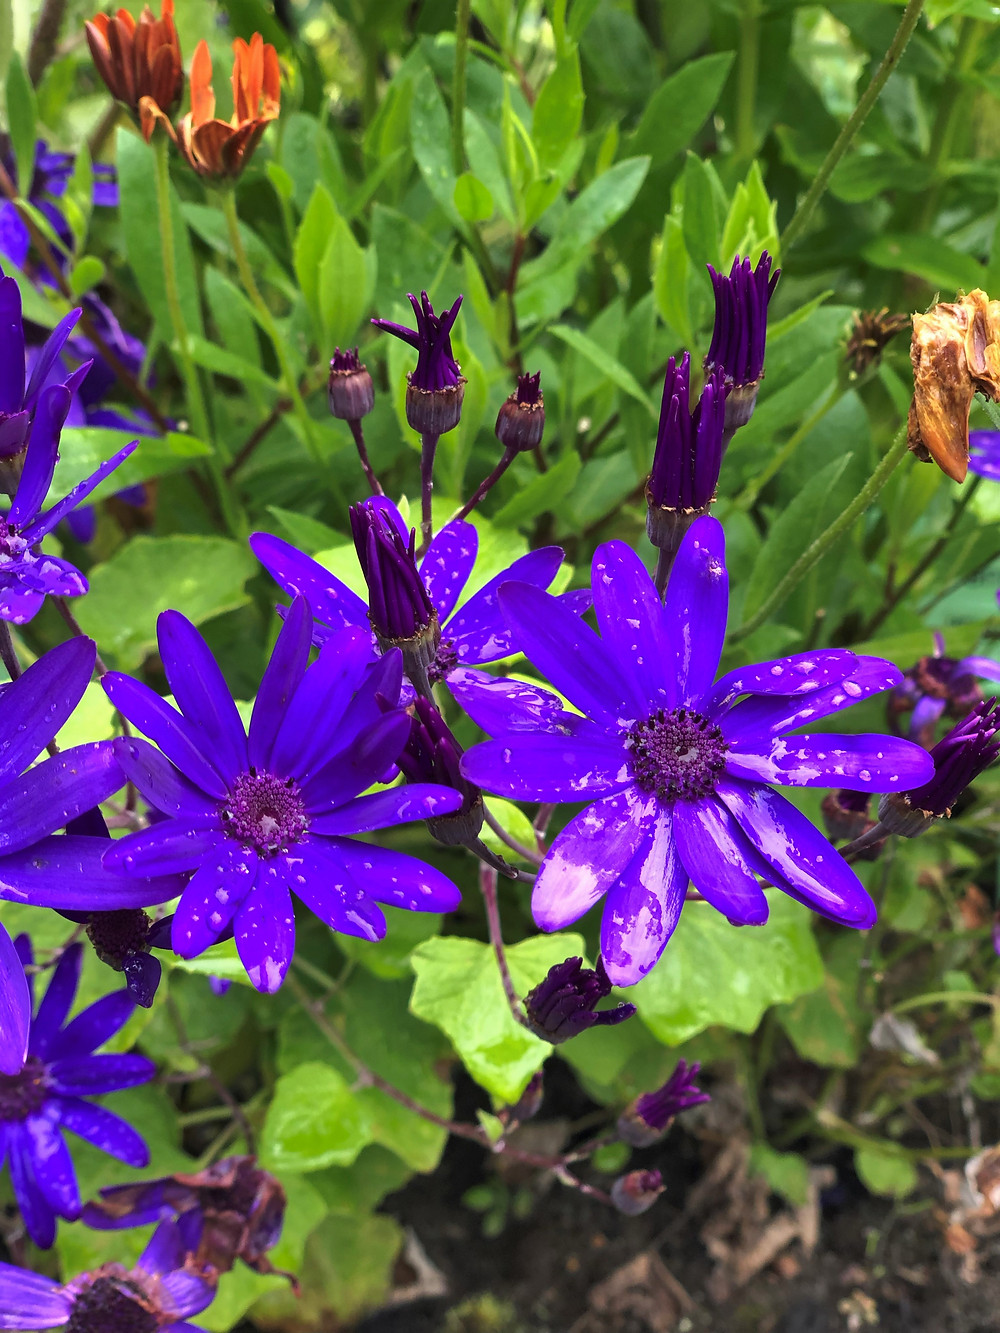 Purple flowers in the gardens surrounding Dunvegan Castle on the Isle of Skye